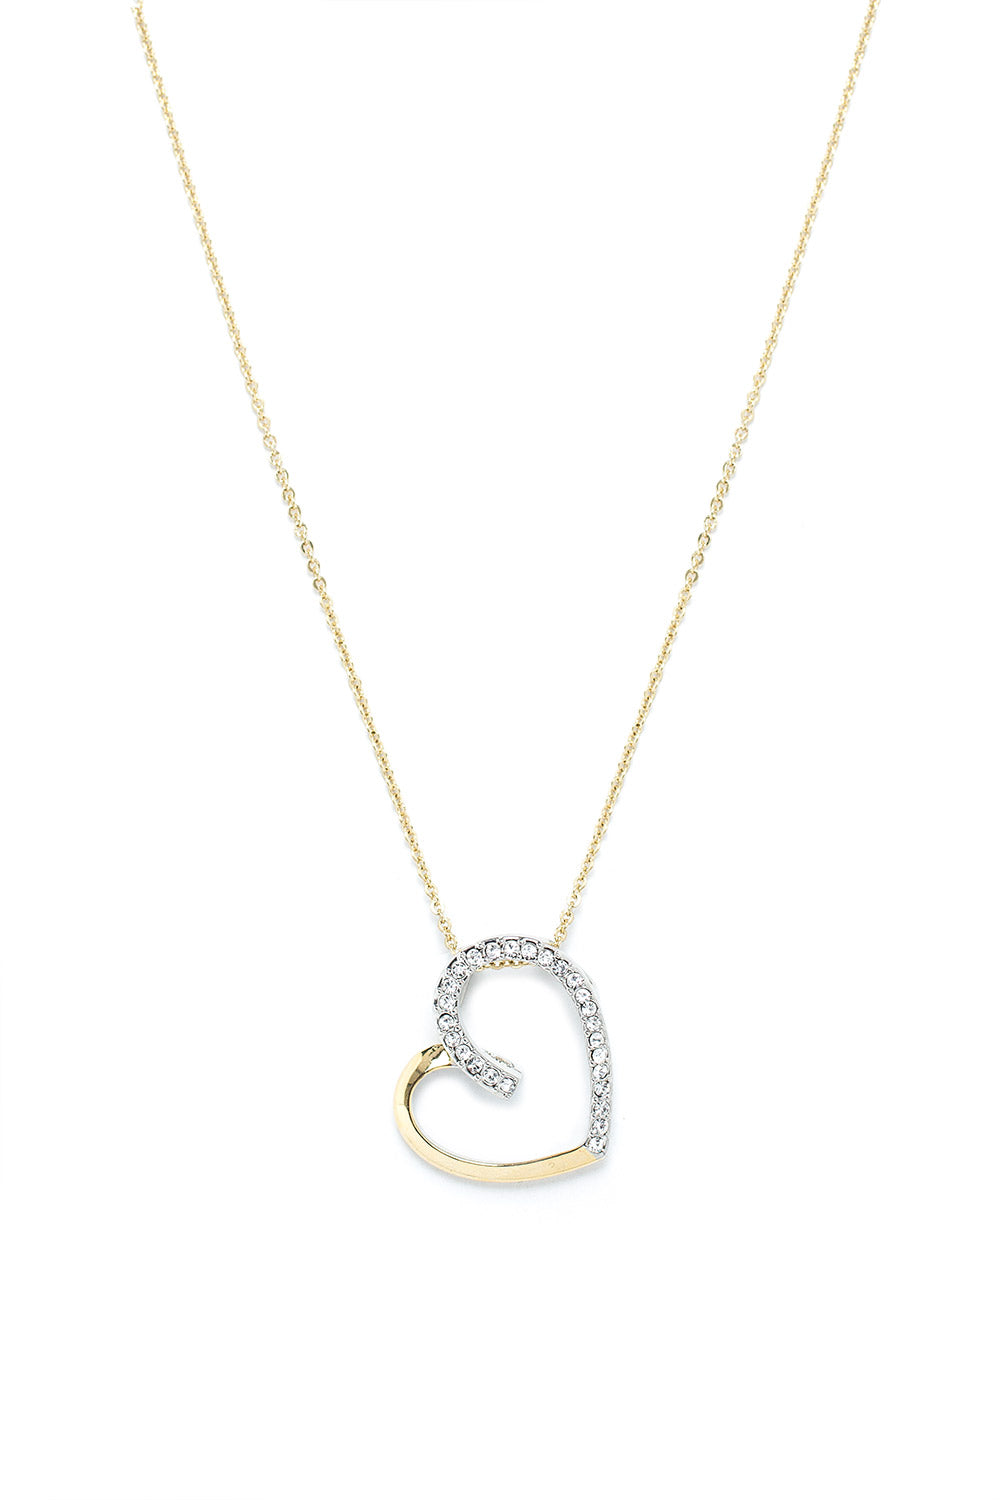 Type 1 Hearts In Atlantis Necklace